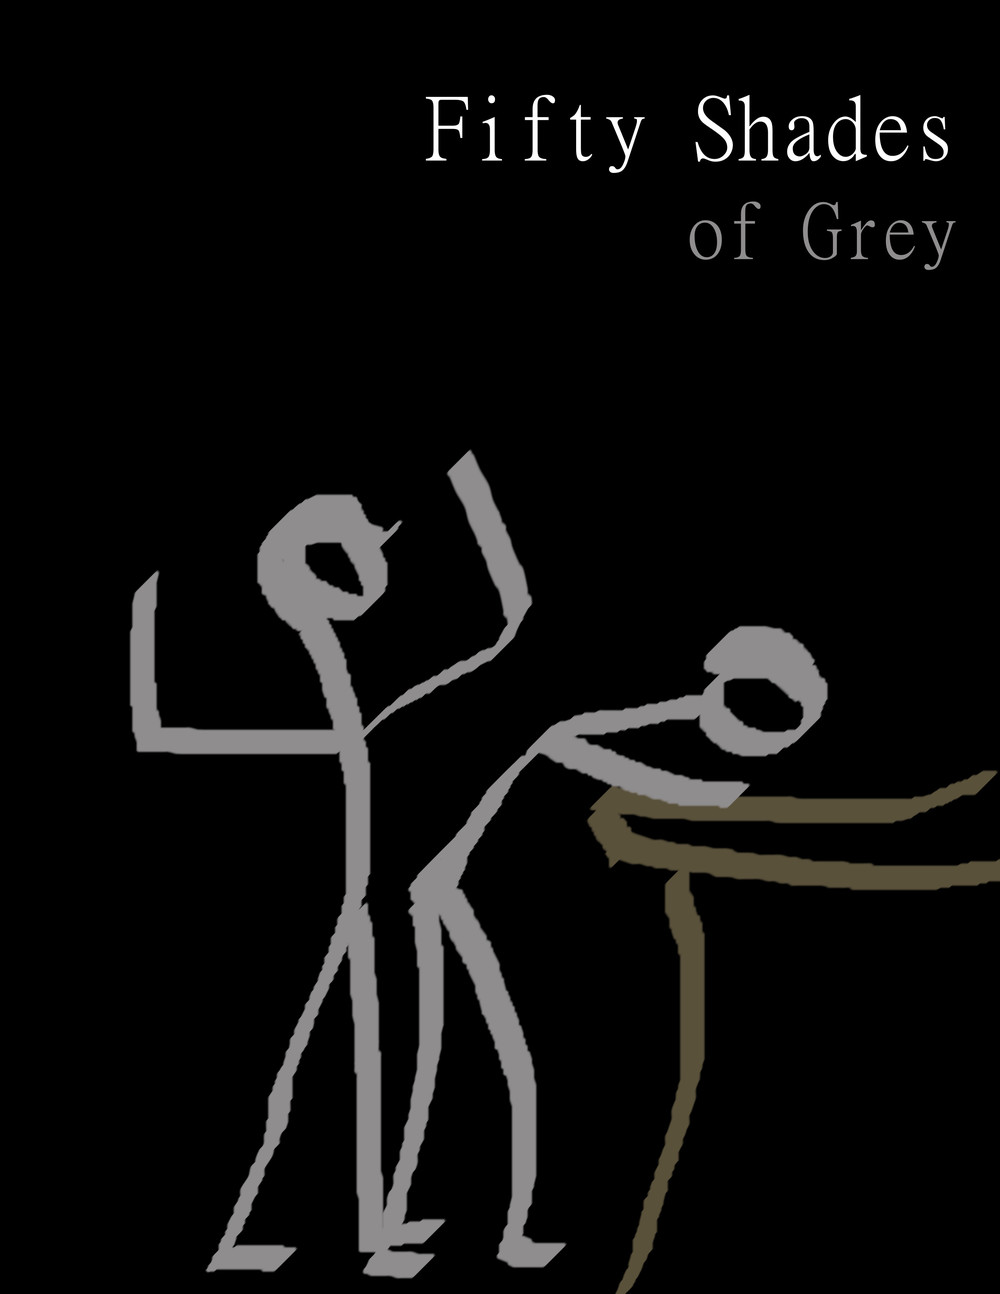 50 Shades of Grey by E J Lames